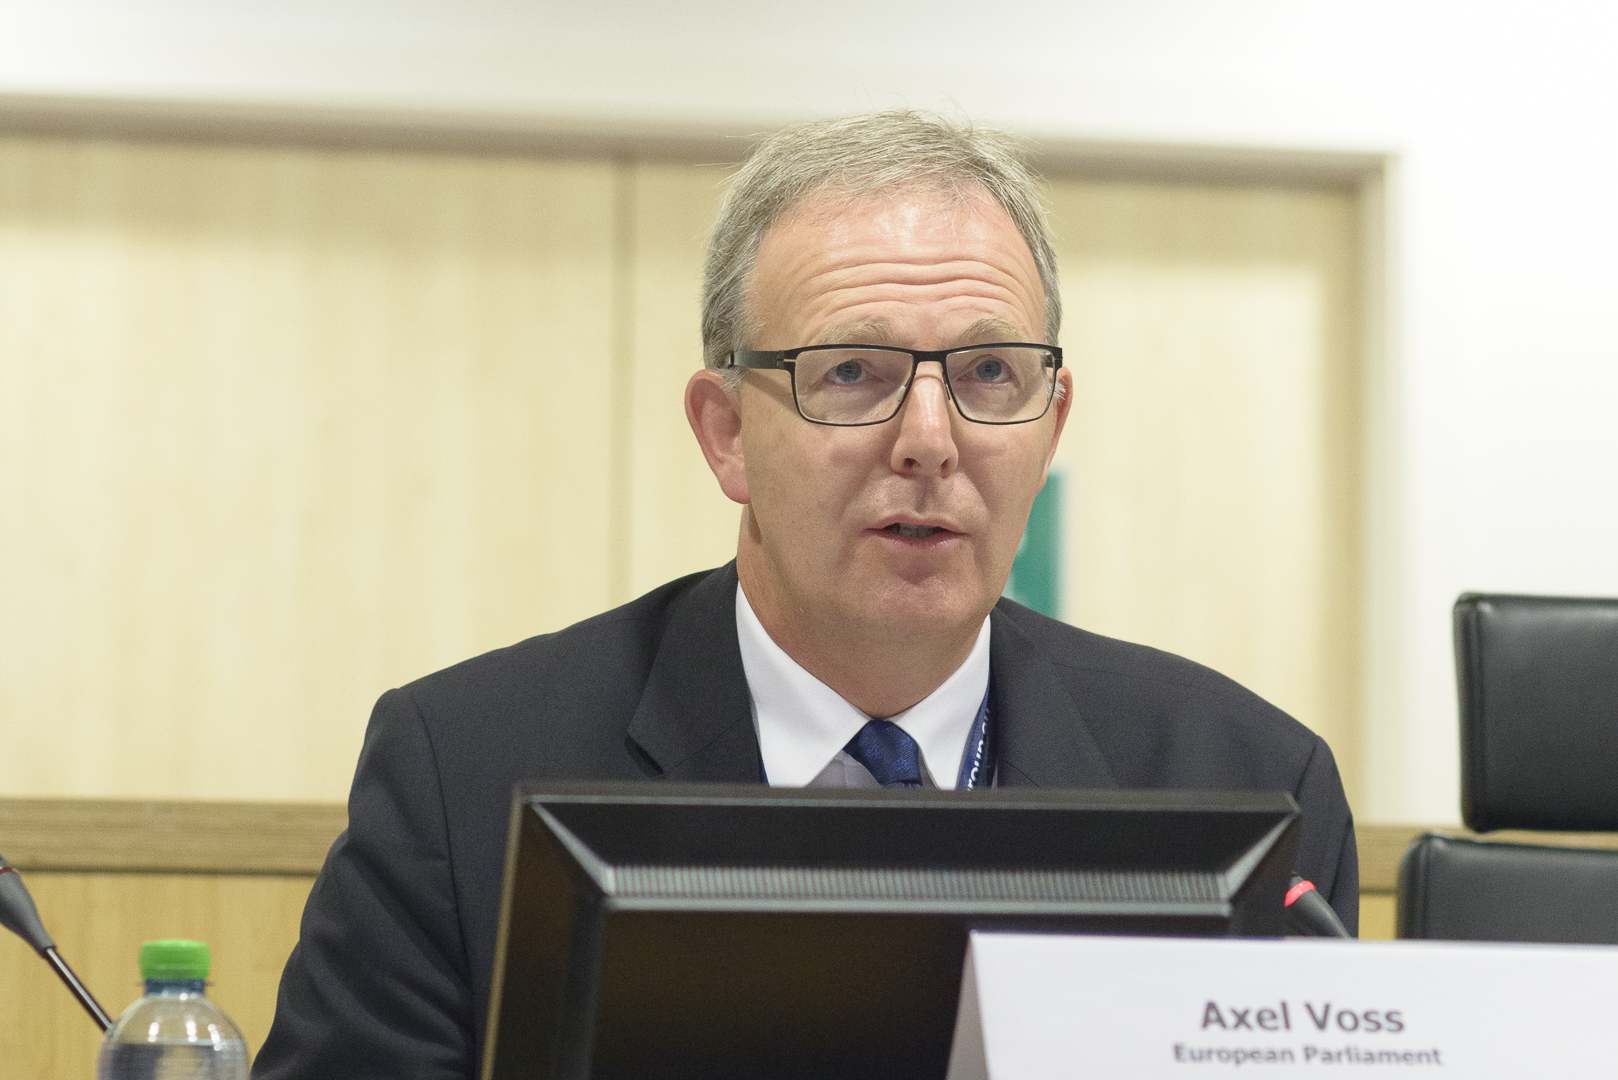 PUTTING EU LAW INTO PRACTICE CONFERENCE - Axel Voss, Member, Committee on Legal Affairs, European Parliament